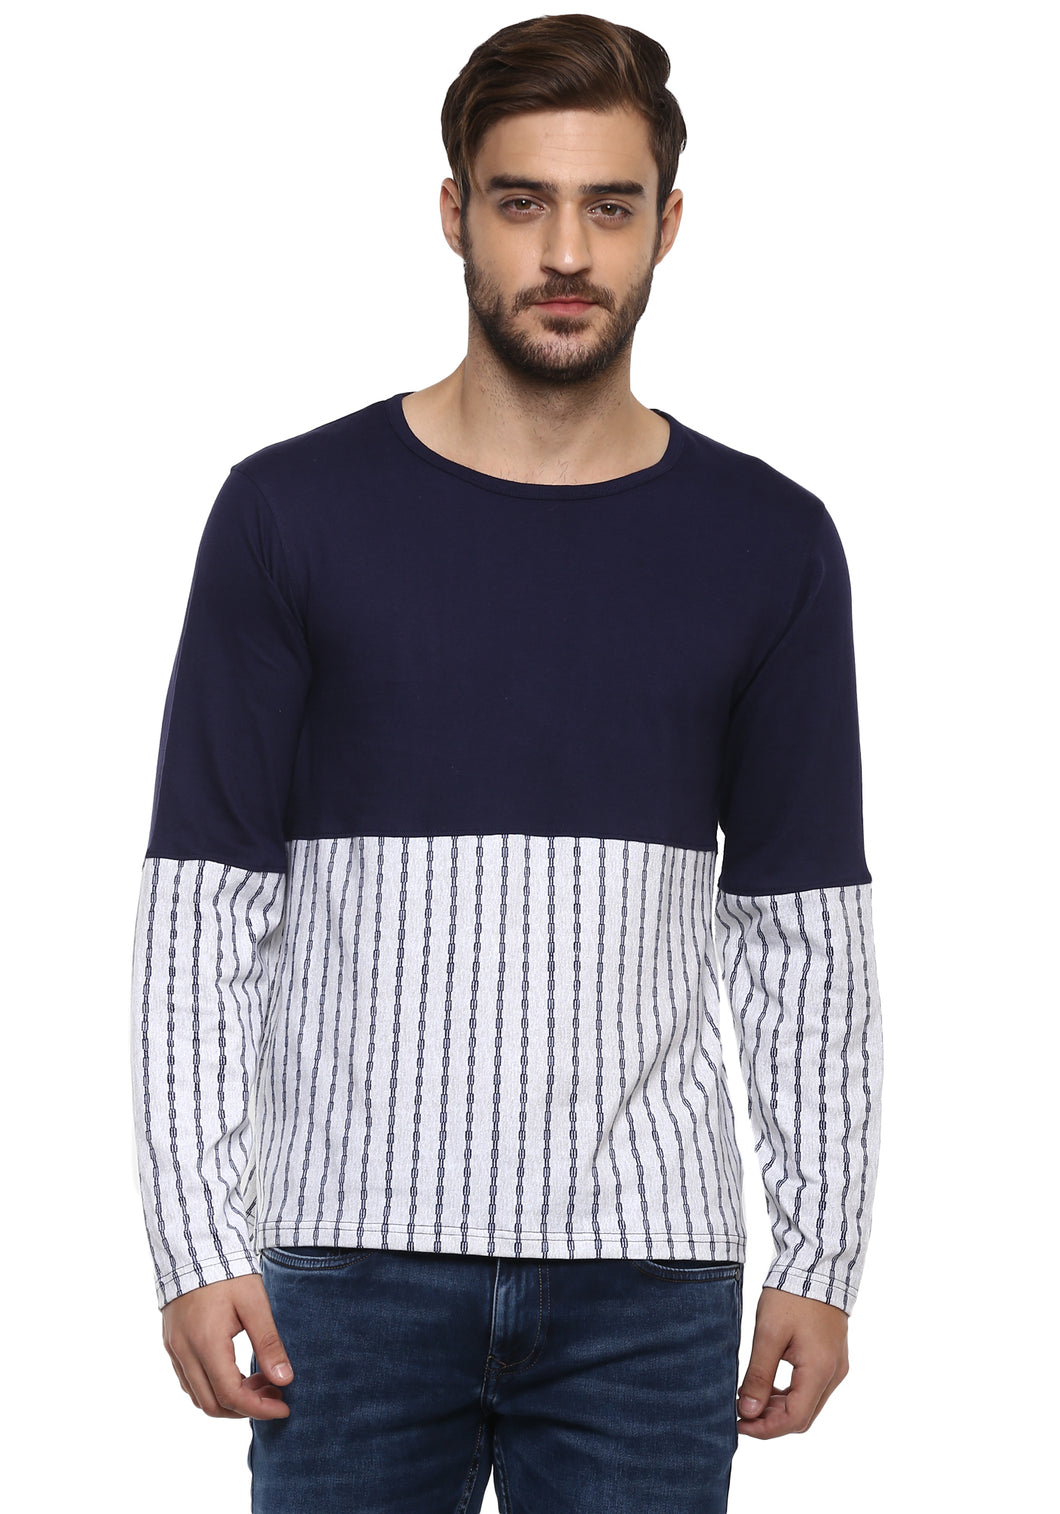 Full sleeve White and Blue Stripes Round Neck Tee